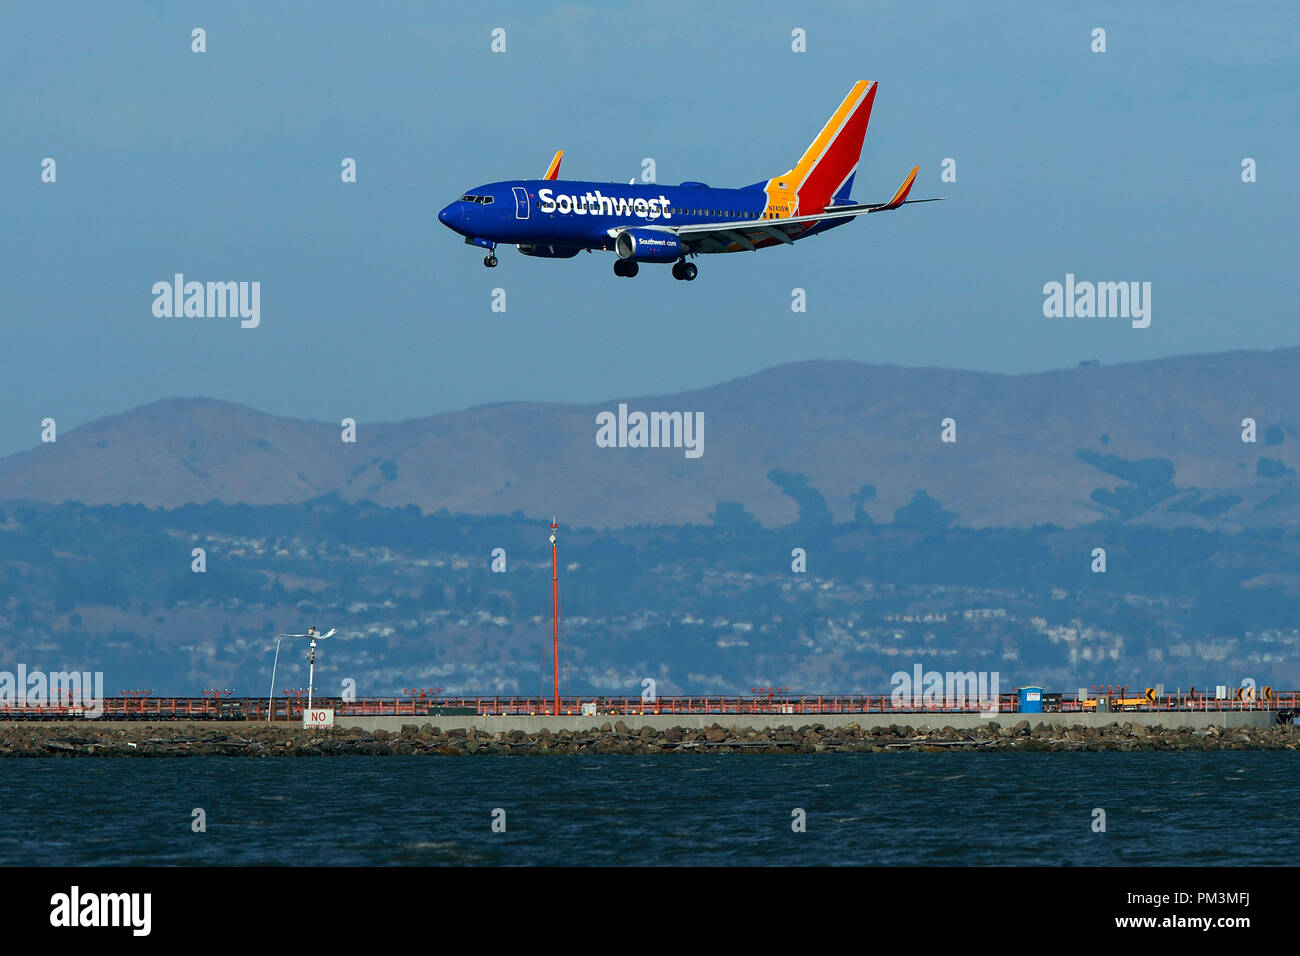 2c922011d5f0 Boeing 737-7H4 (N743SW) operated by Southwest Airlines landing at San  Francisco International